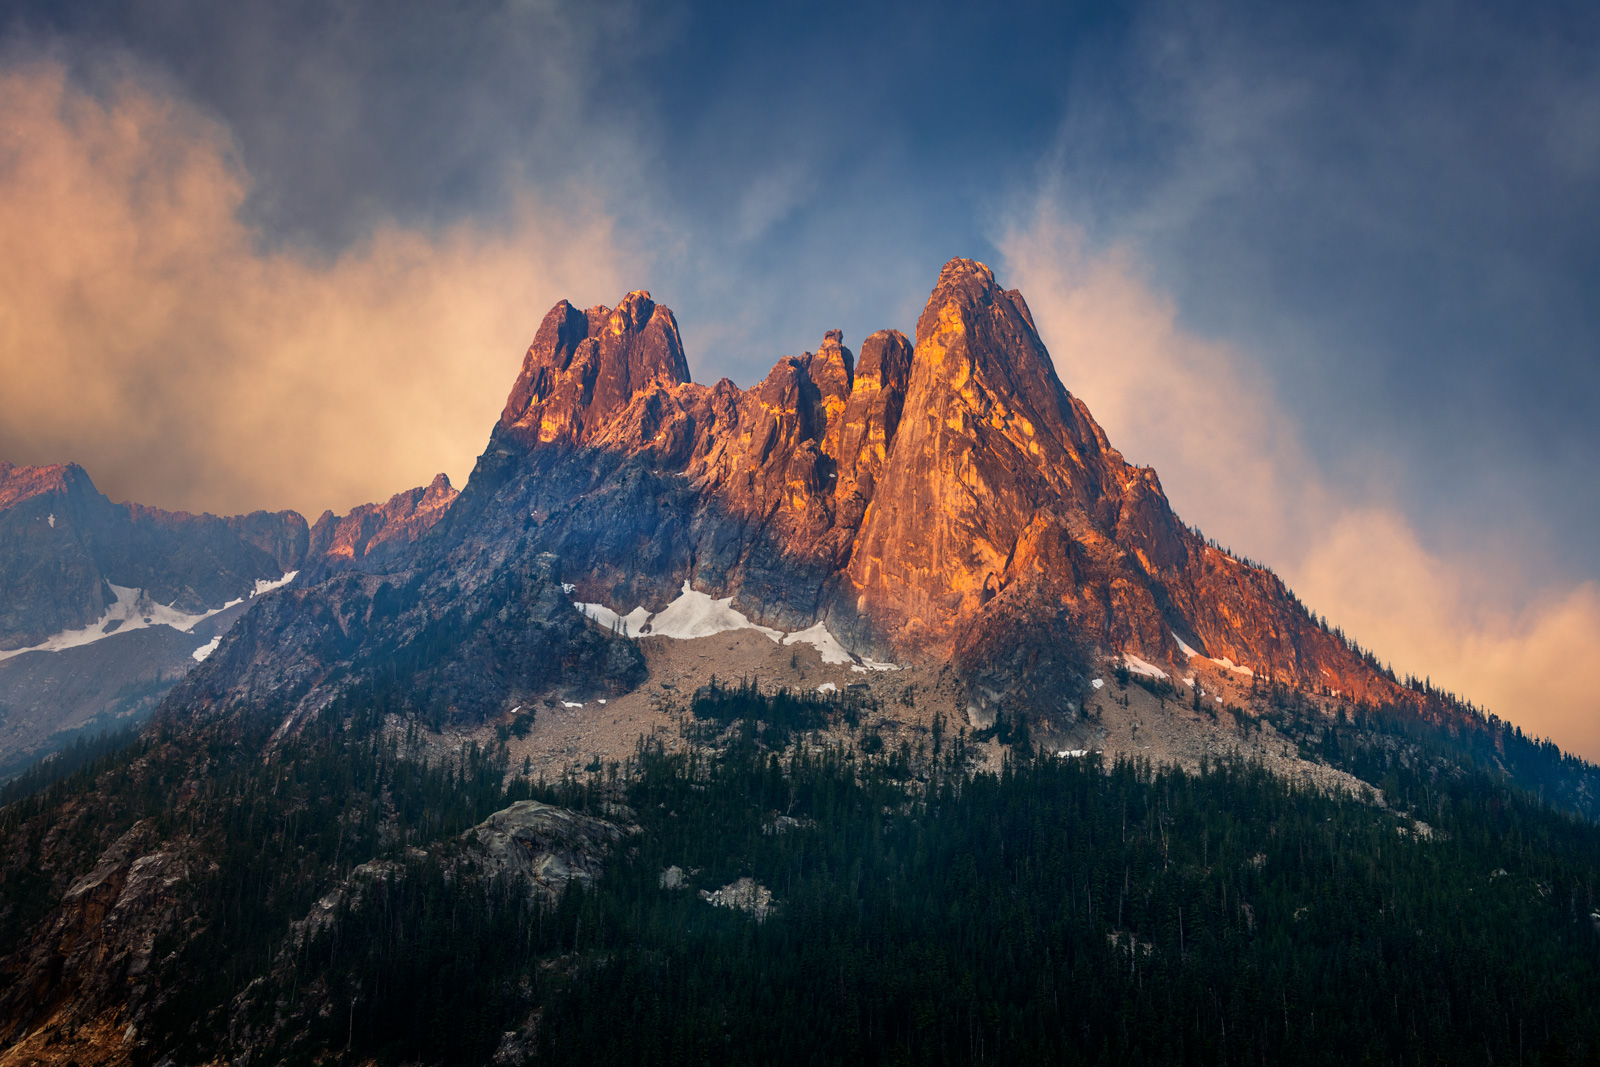 A Limited Edition, Fine Art photograph of sunrise light on Liberty Bell Mountain in North Cascade National Park in Washington...